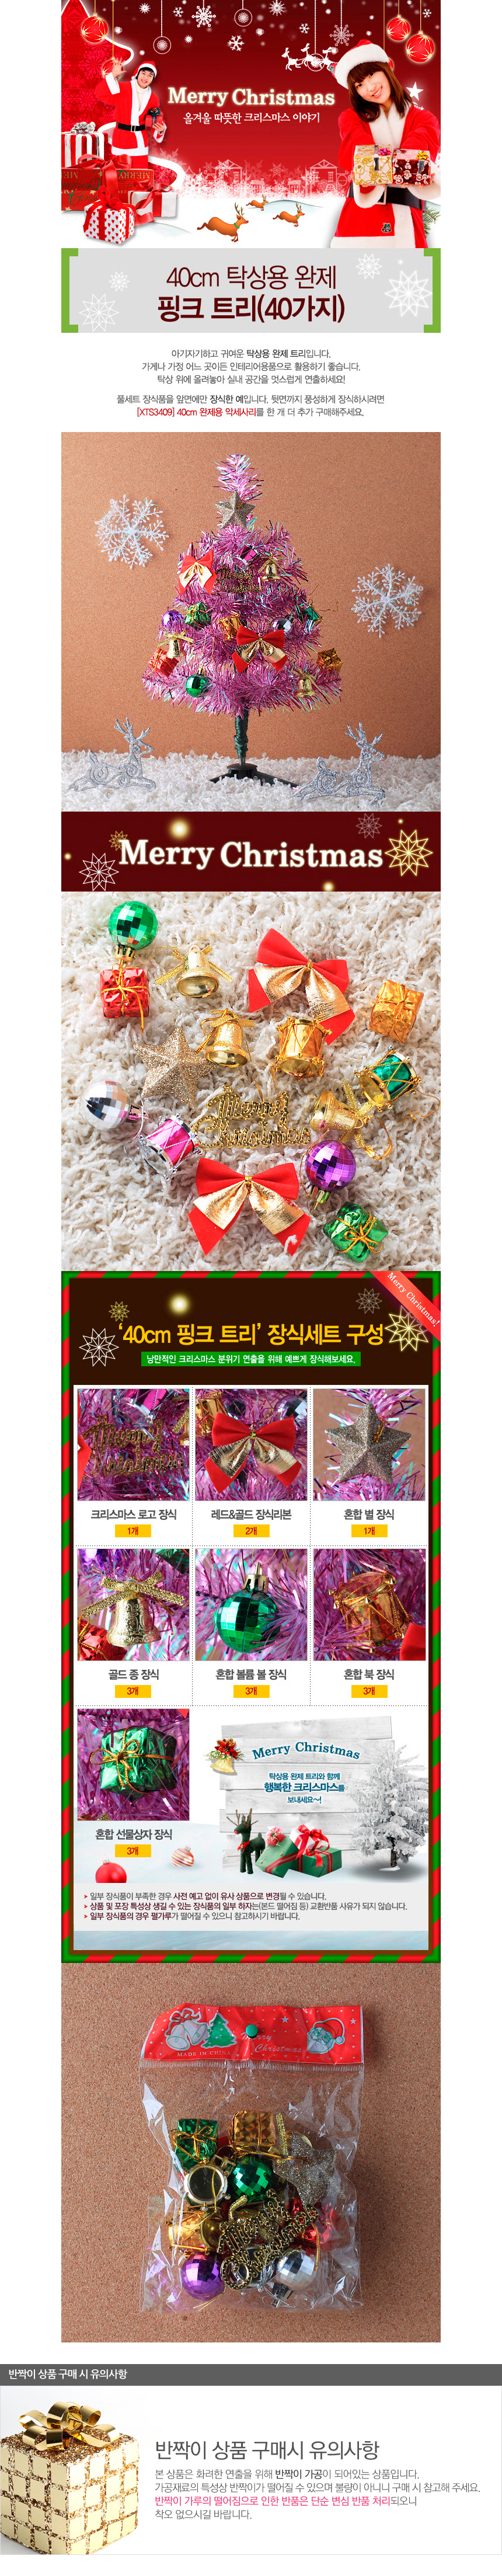 [ WINEQOK ] Christmas Goods / Completed desktop pink shiny tree branches